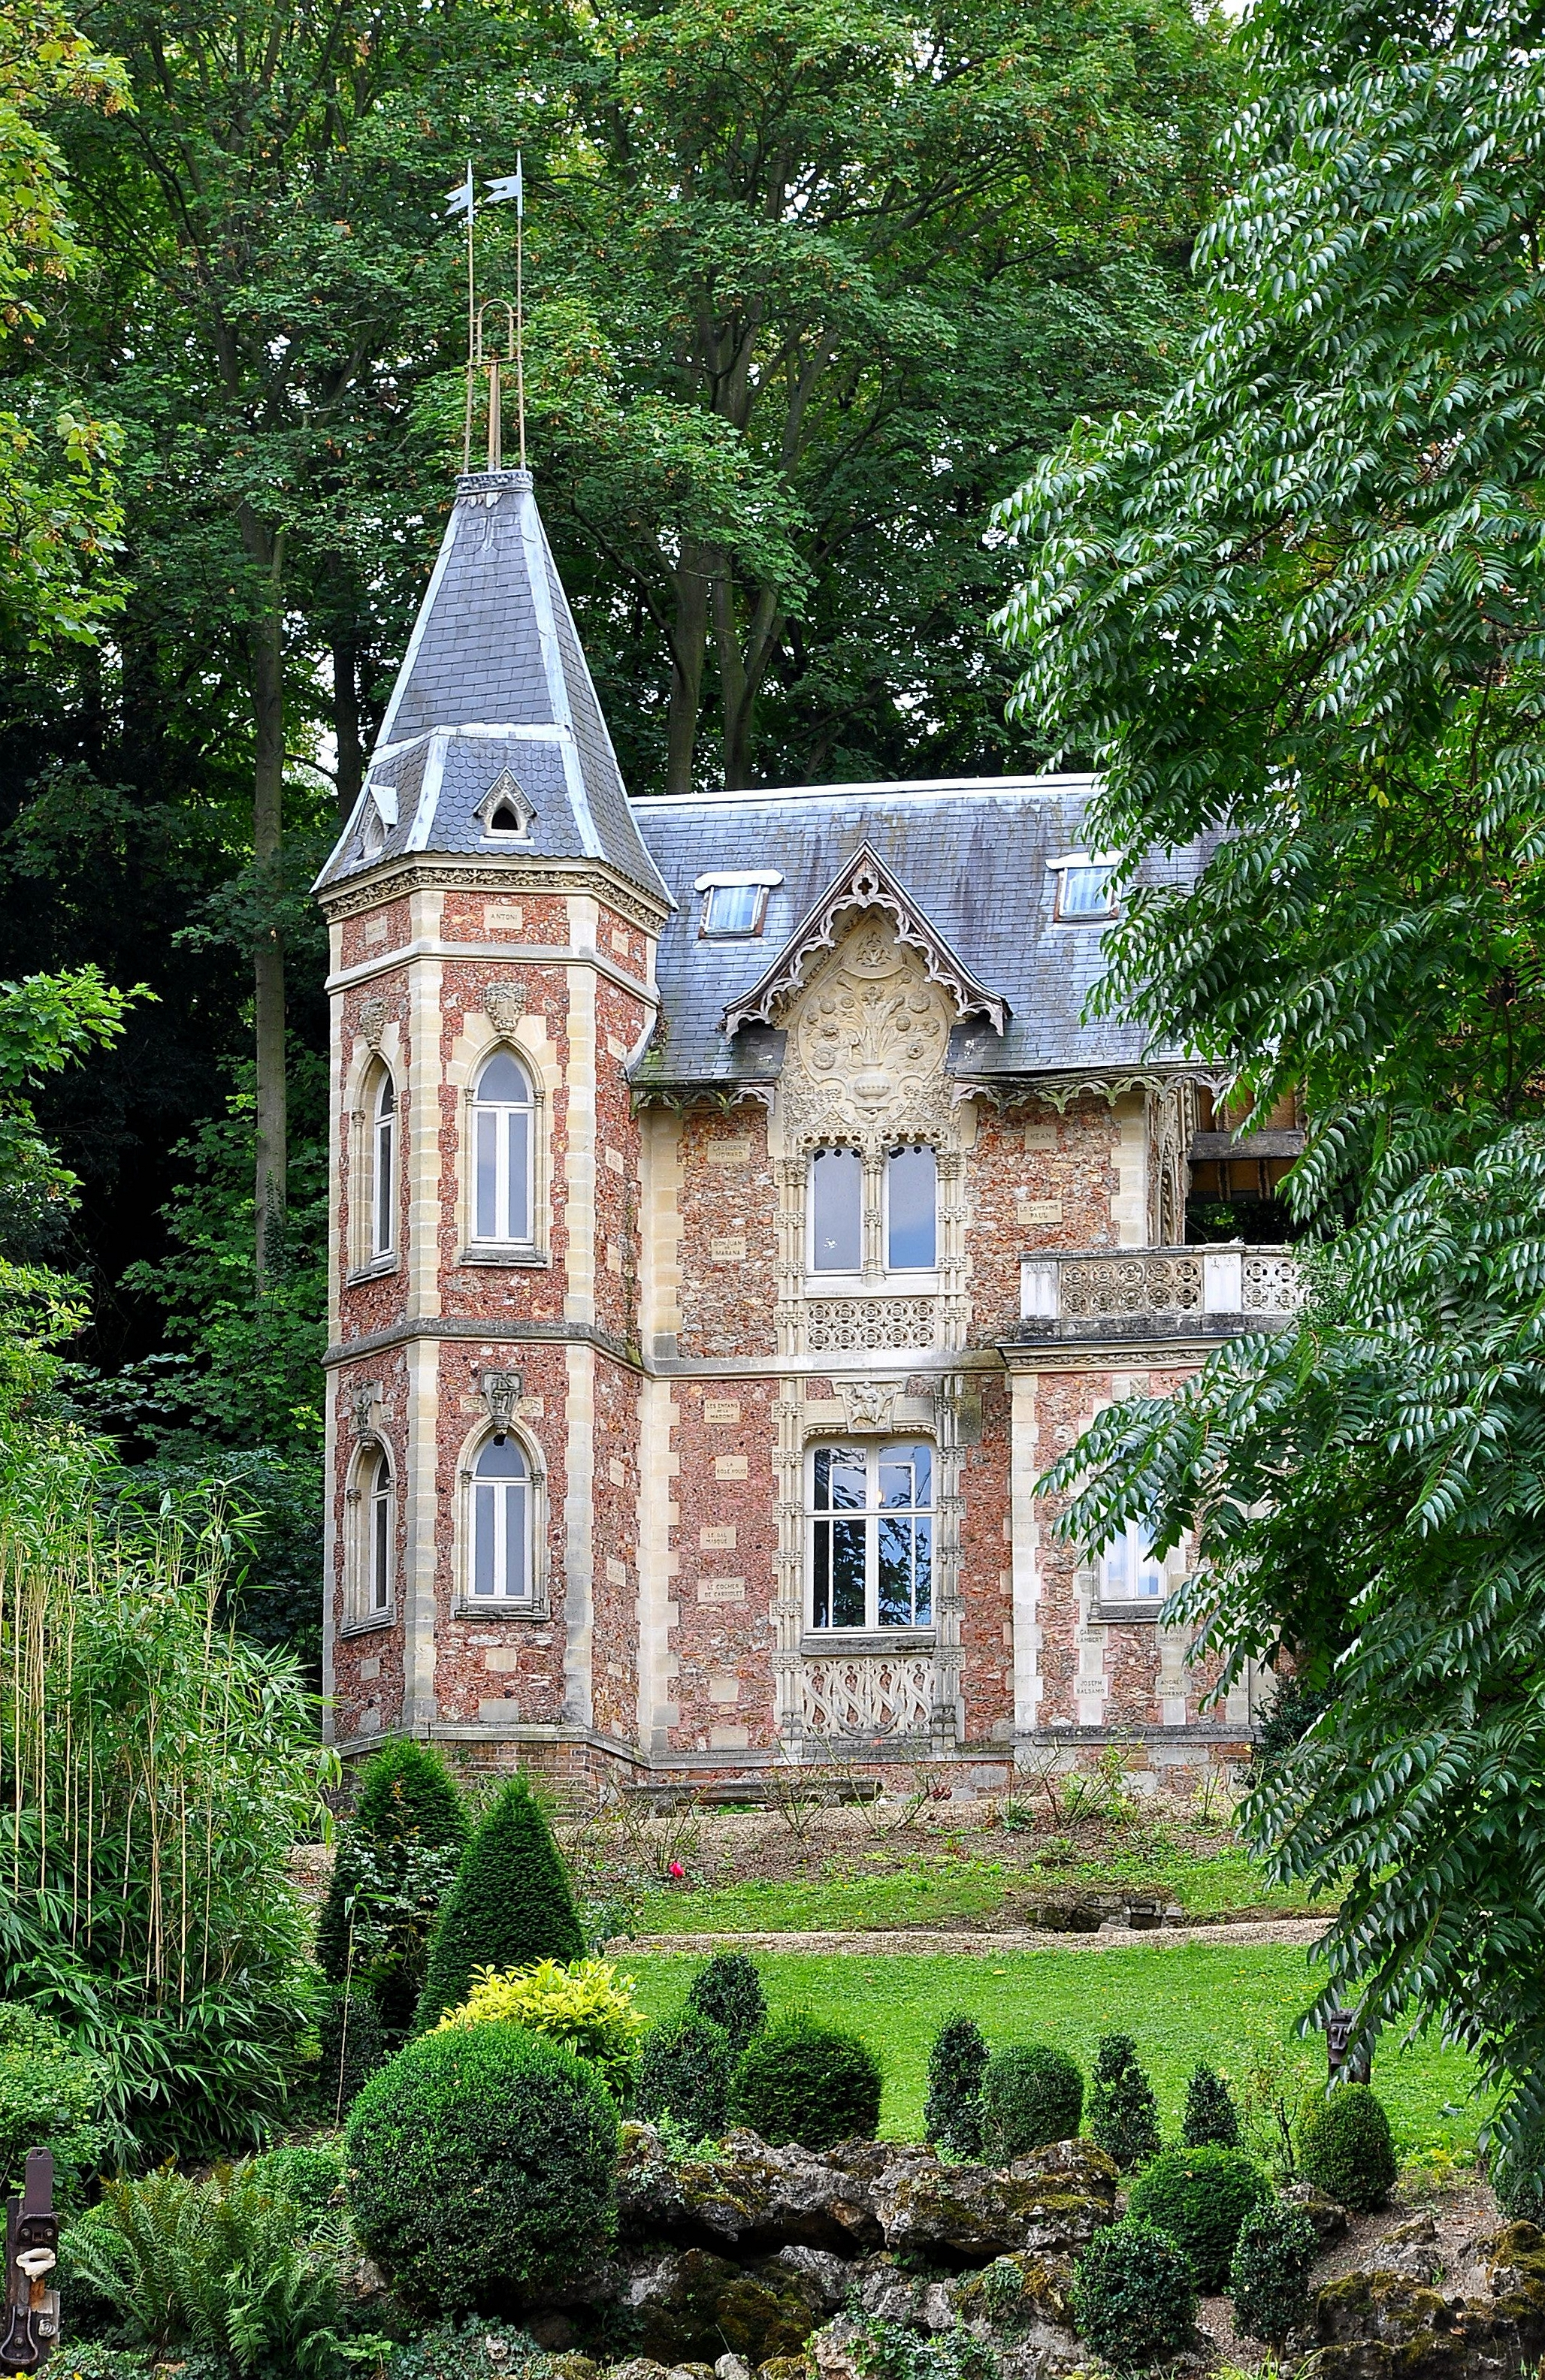 File:Le Port-Marly Château d'If 001.JPG - Wikimedia Commons